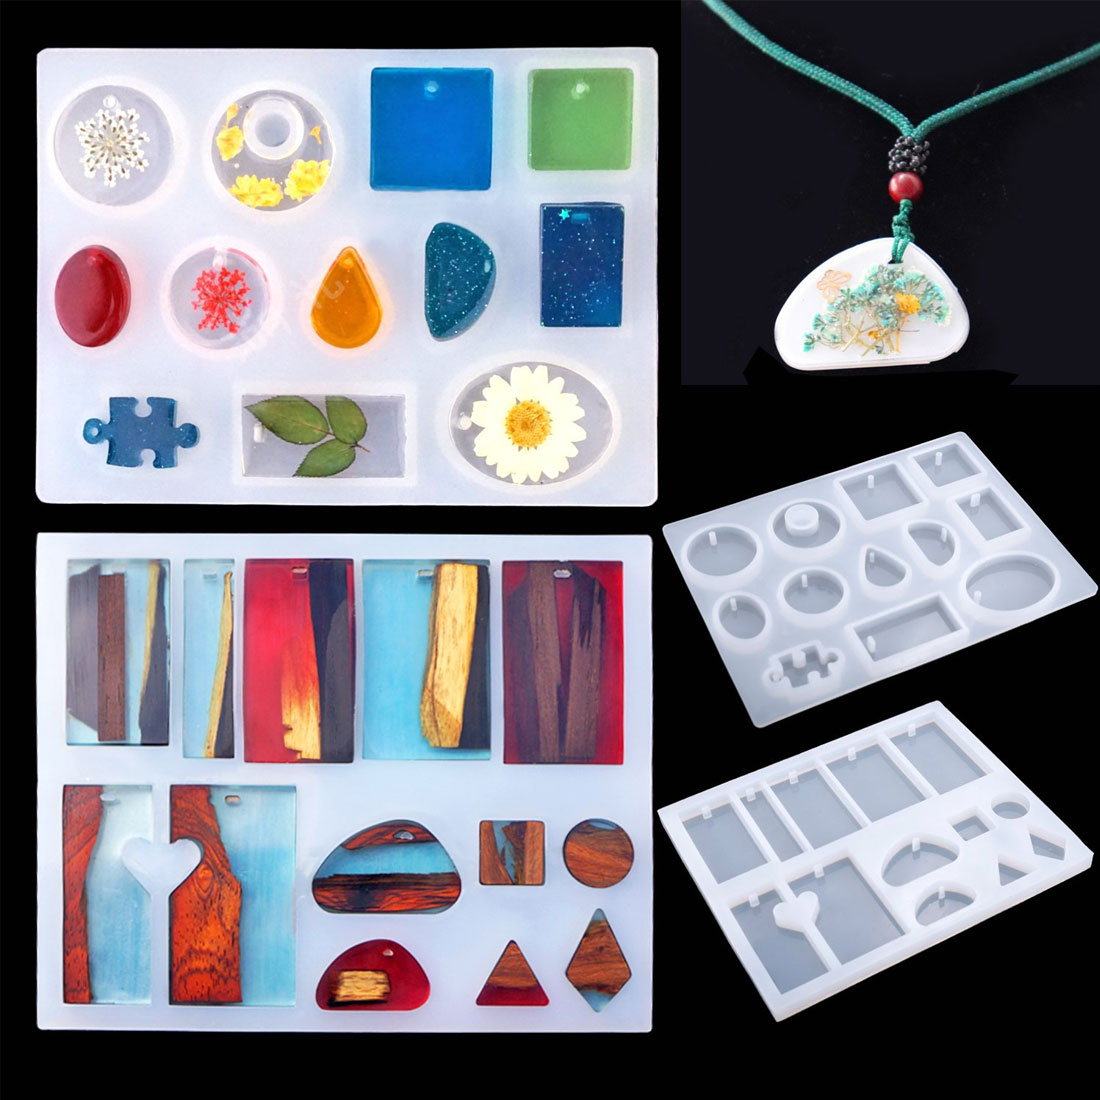 Mold suit 83 pieces of crystal glue tool DIY casting set bracelet pendant jewelry silicone mold combination with drill in Jewelry Tools Equipments from Jewelry Accessories